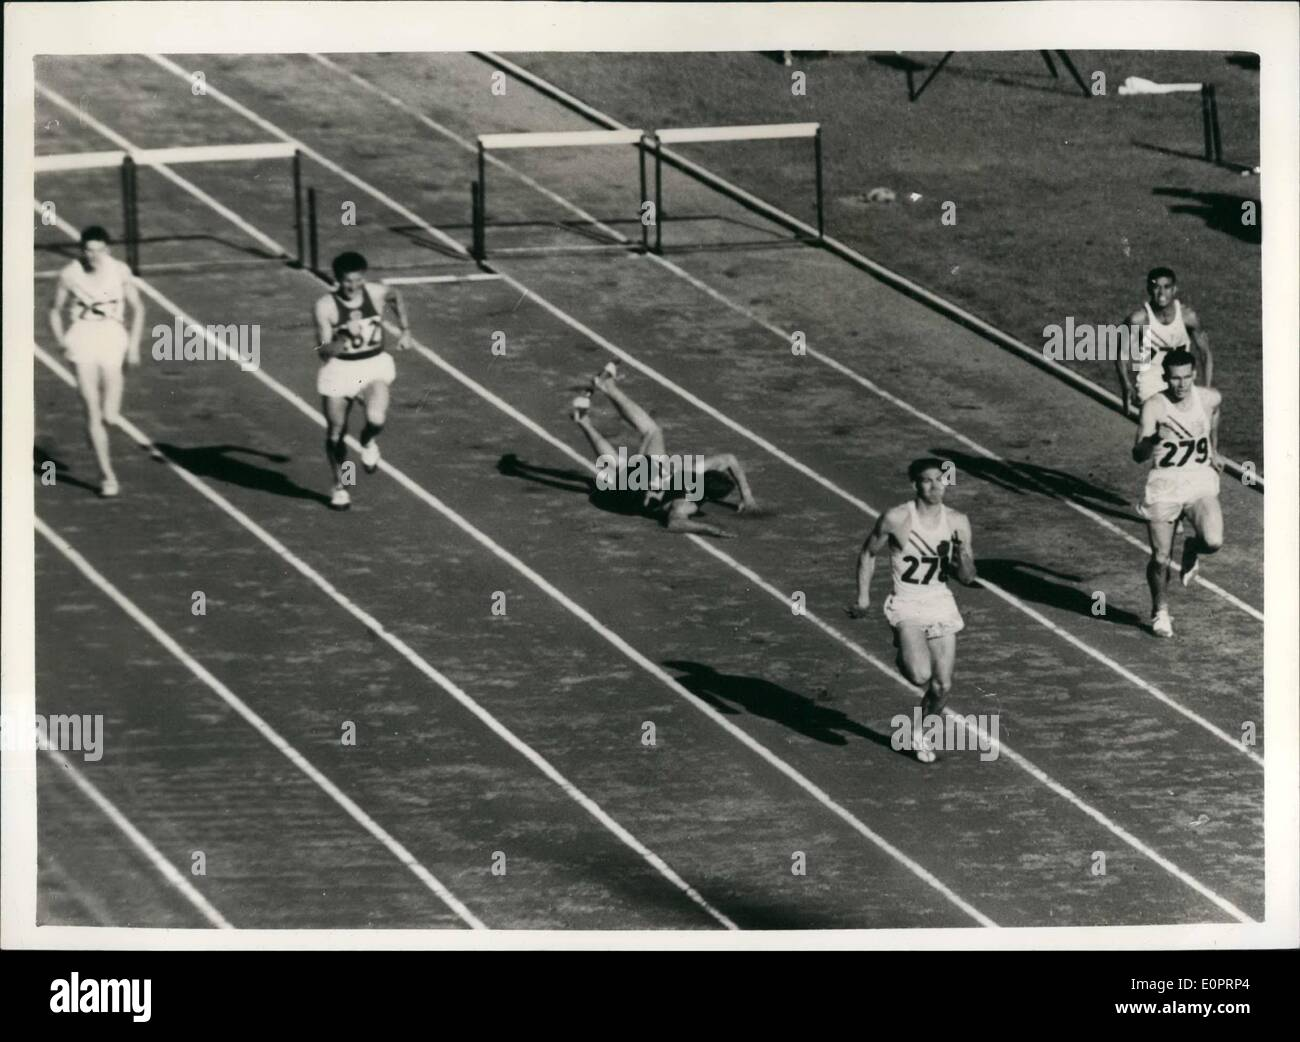 Nov. 11, 1956 - Olympic games in Melbourne. 400 metres hurdles final. Photo shows the dramatic scene as G. Potgeiter, - Stock Image